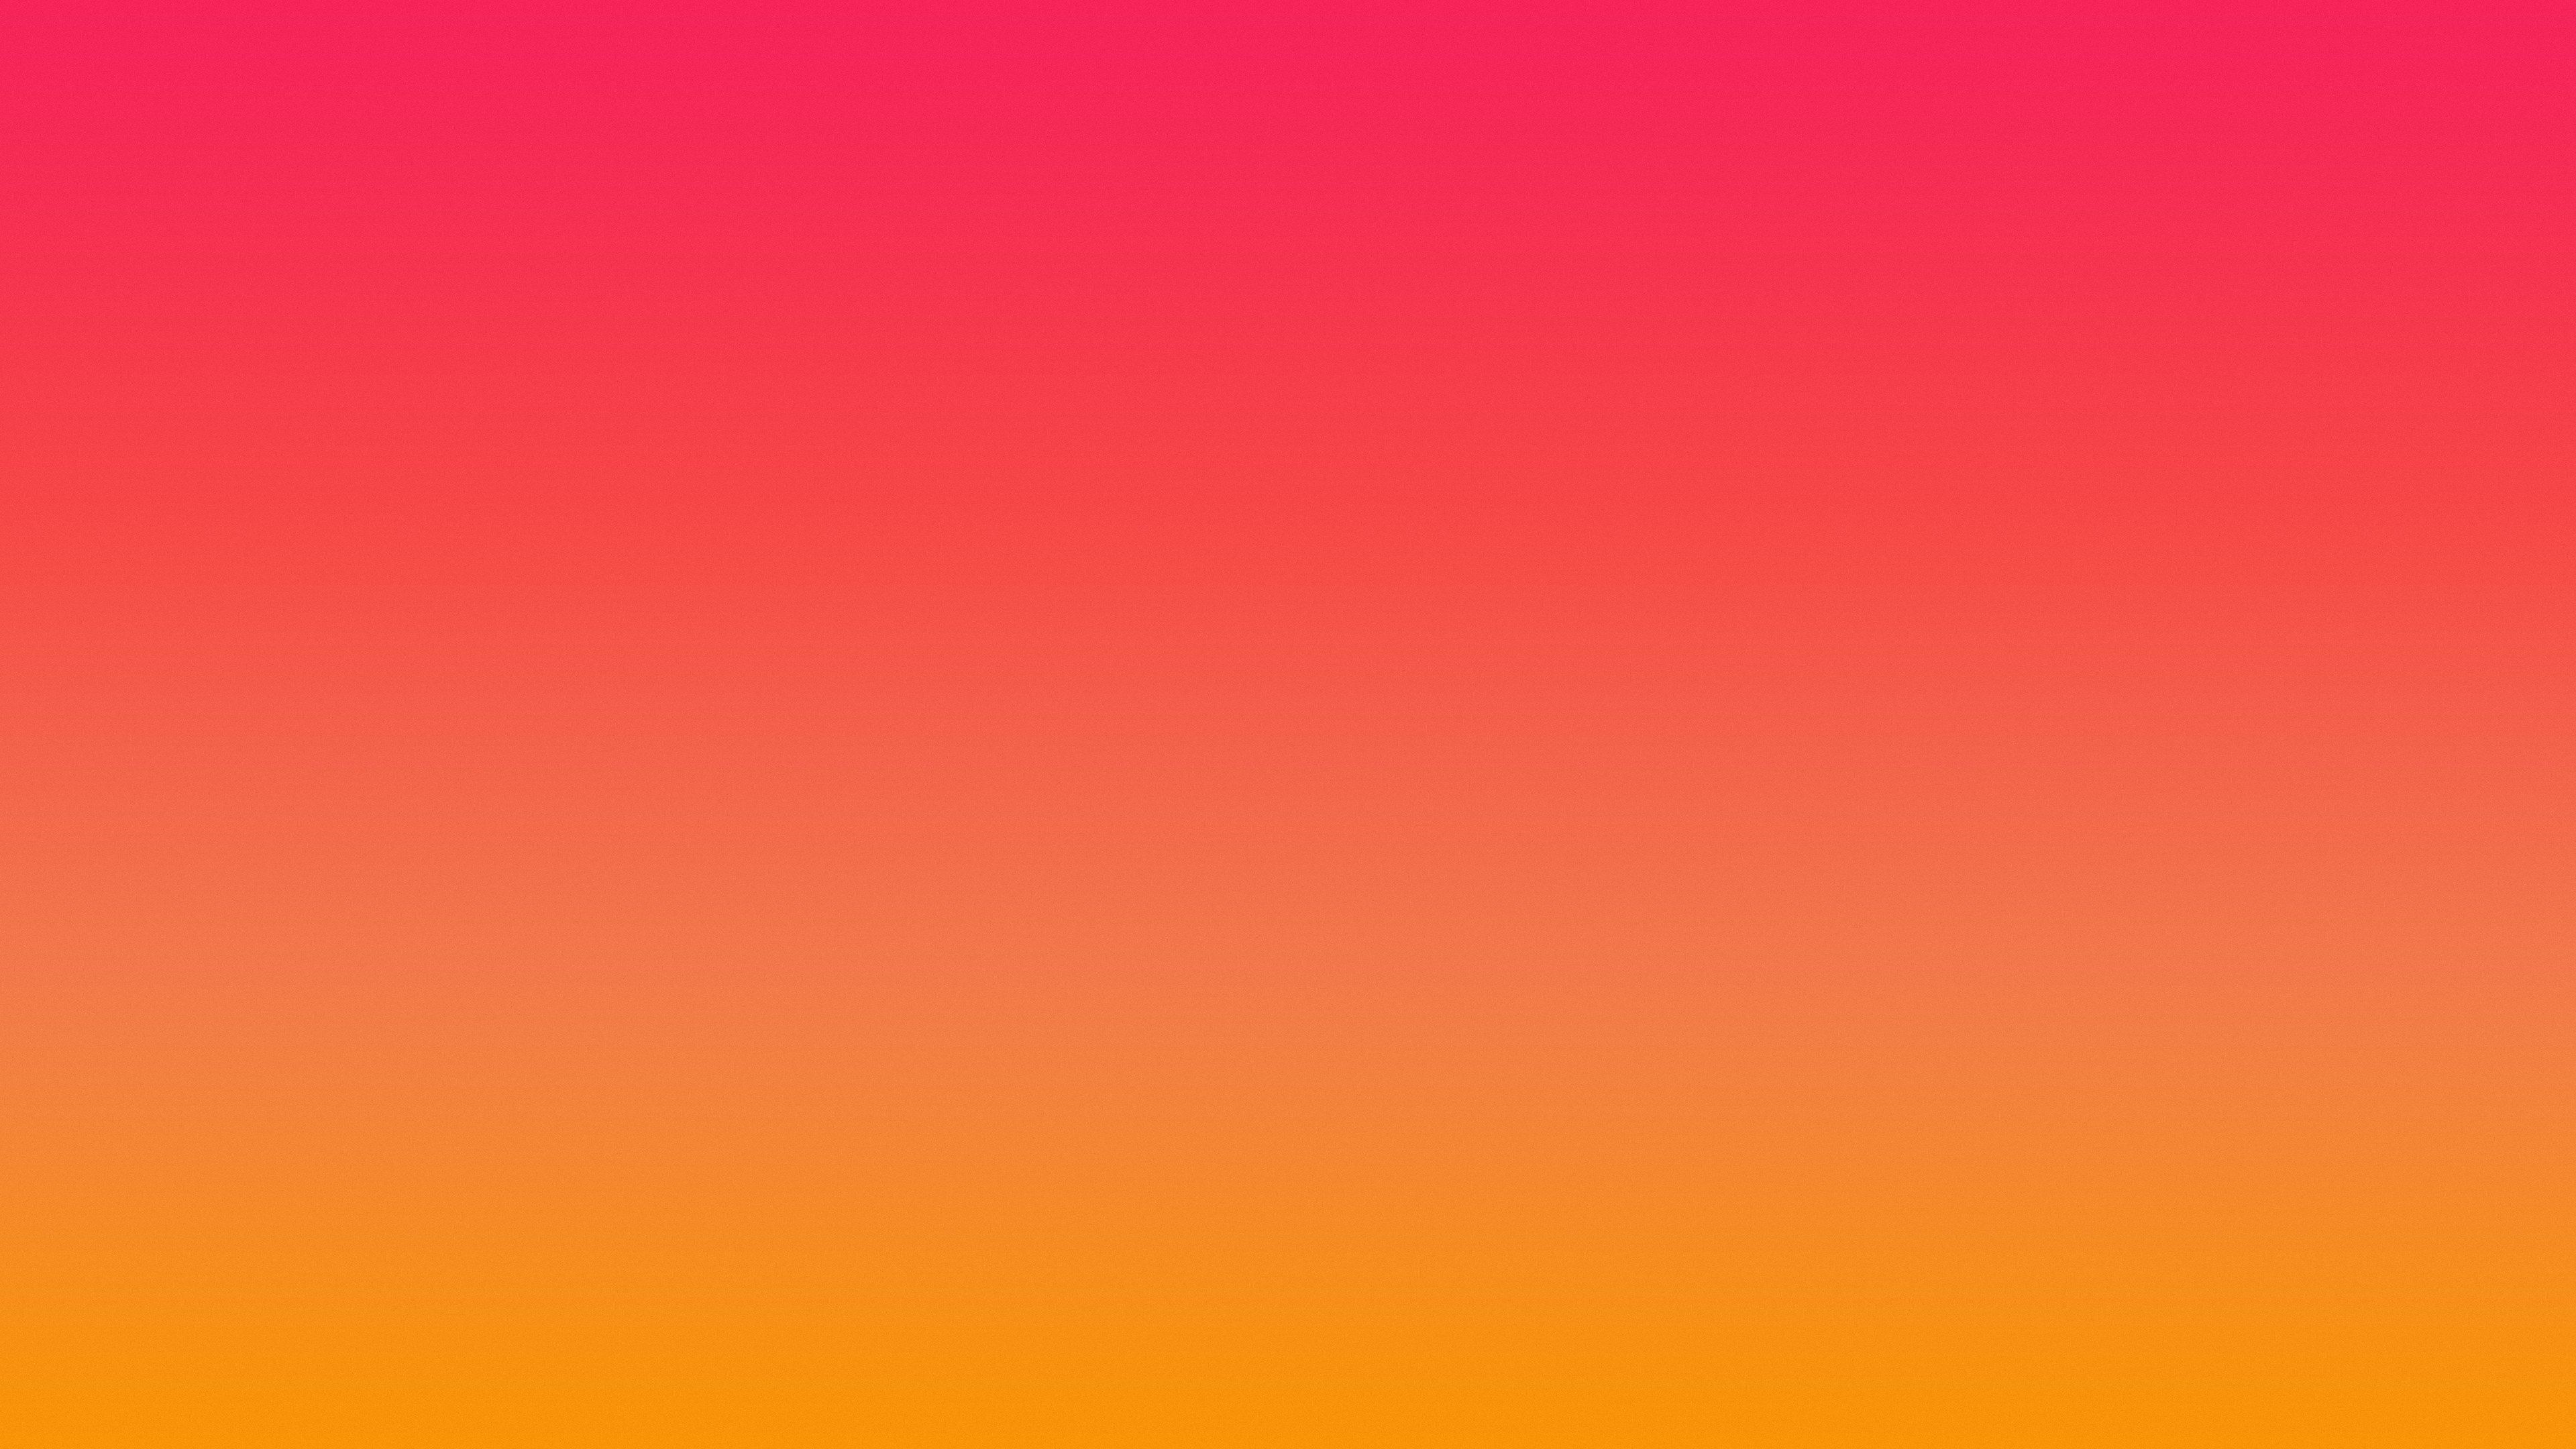 3840x2160 Scalar Field (orange, pink orange)